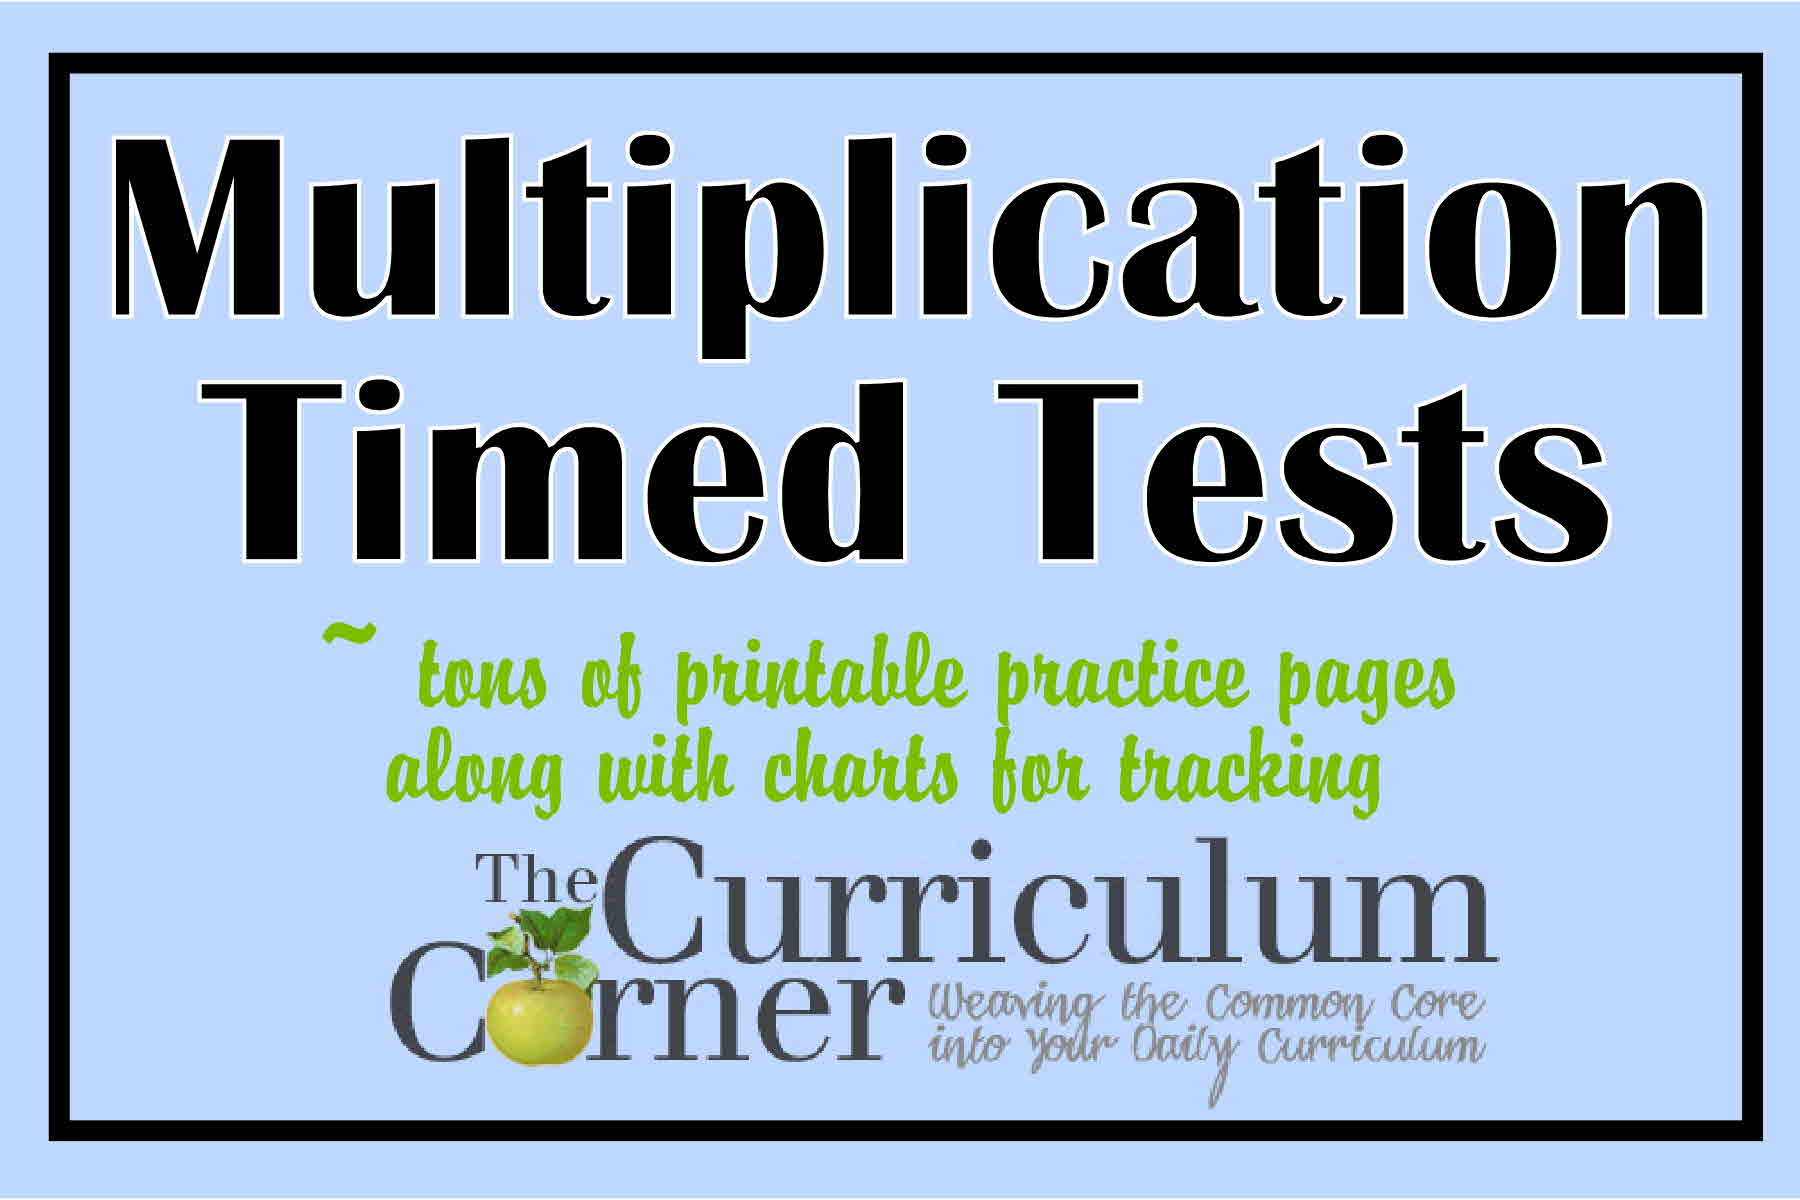 This is a picture of Decisive Printable Multiplication Time Test